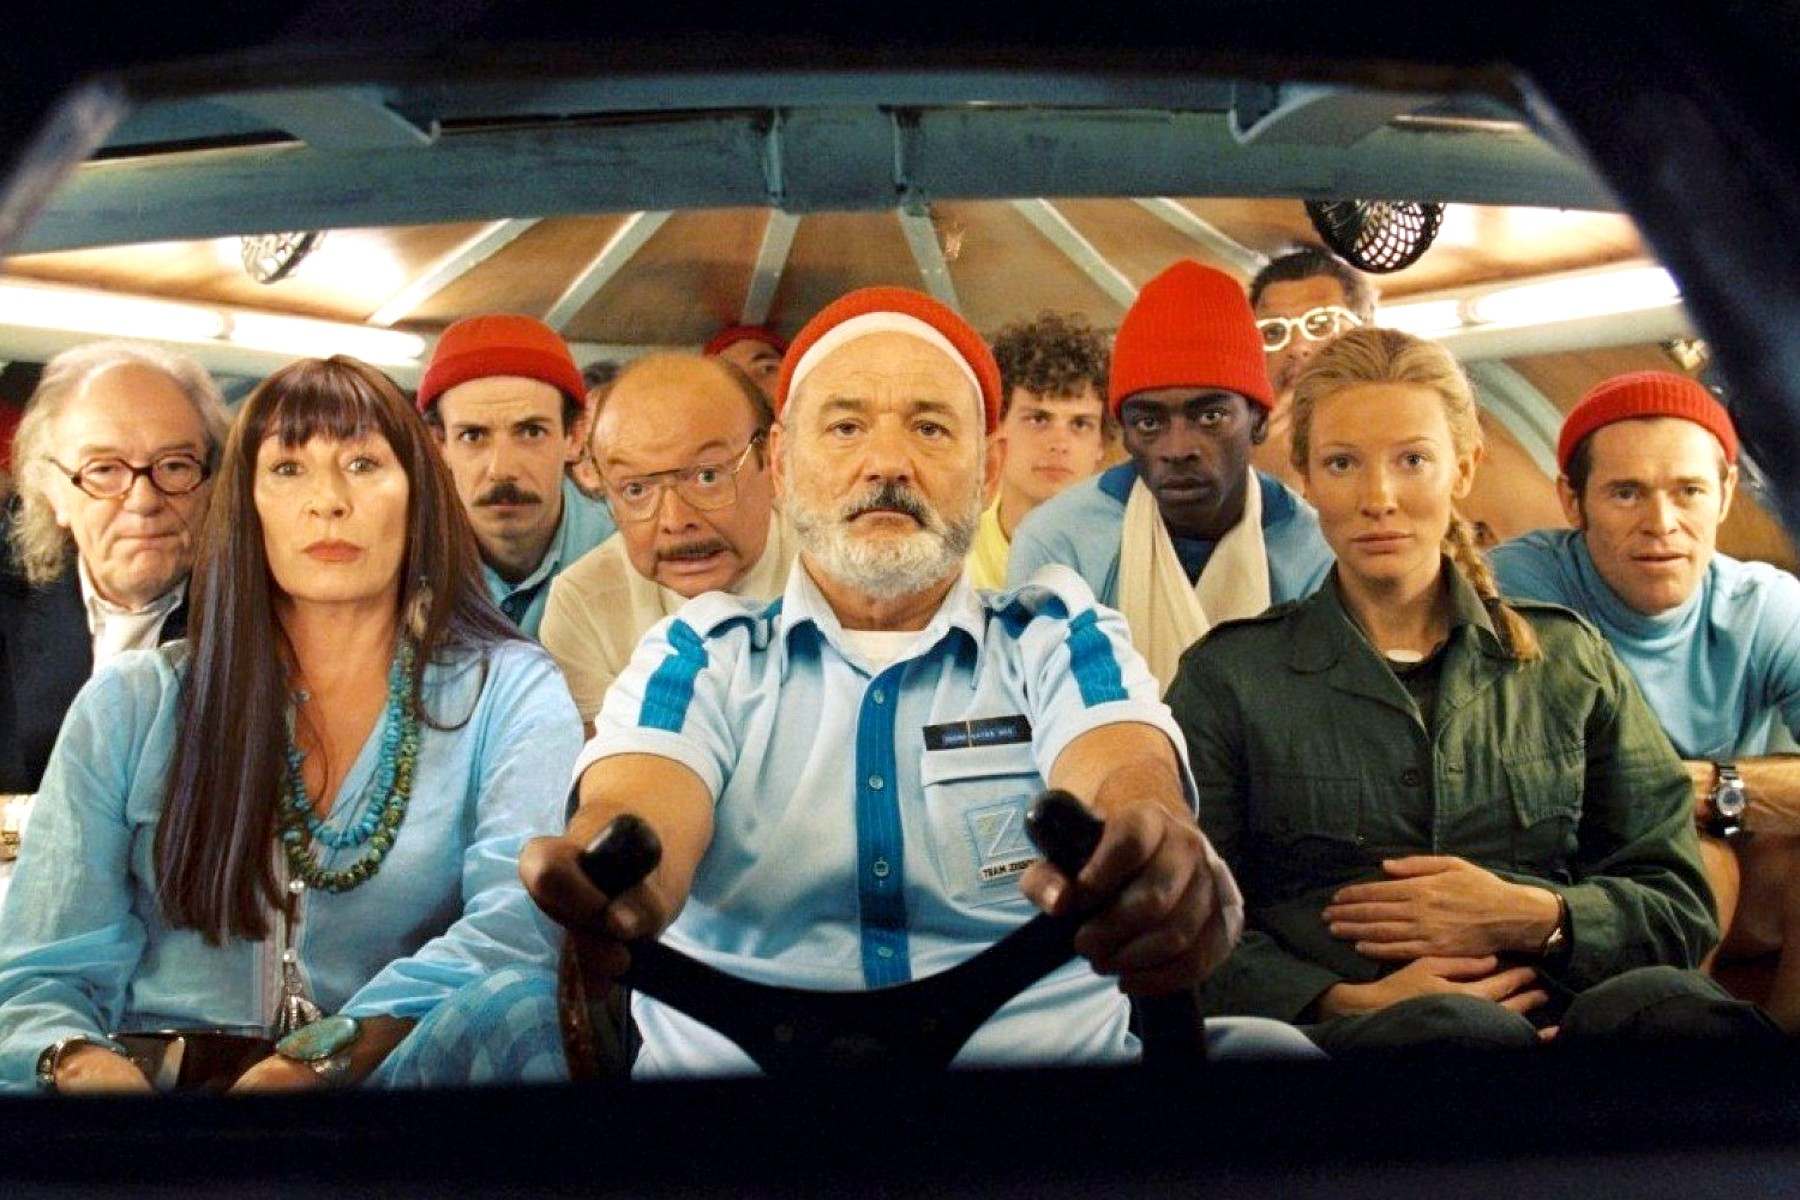 Scene005 The Life Aquatic with Steve Zissou (2004)